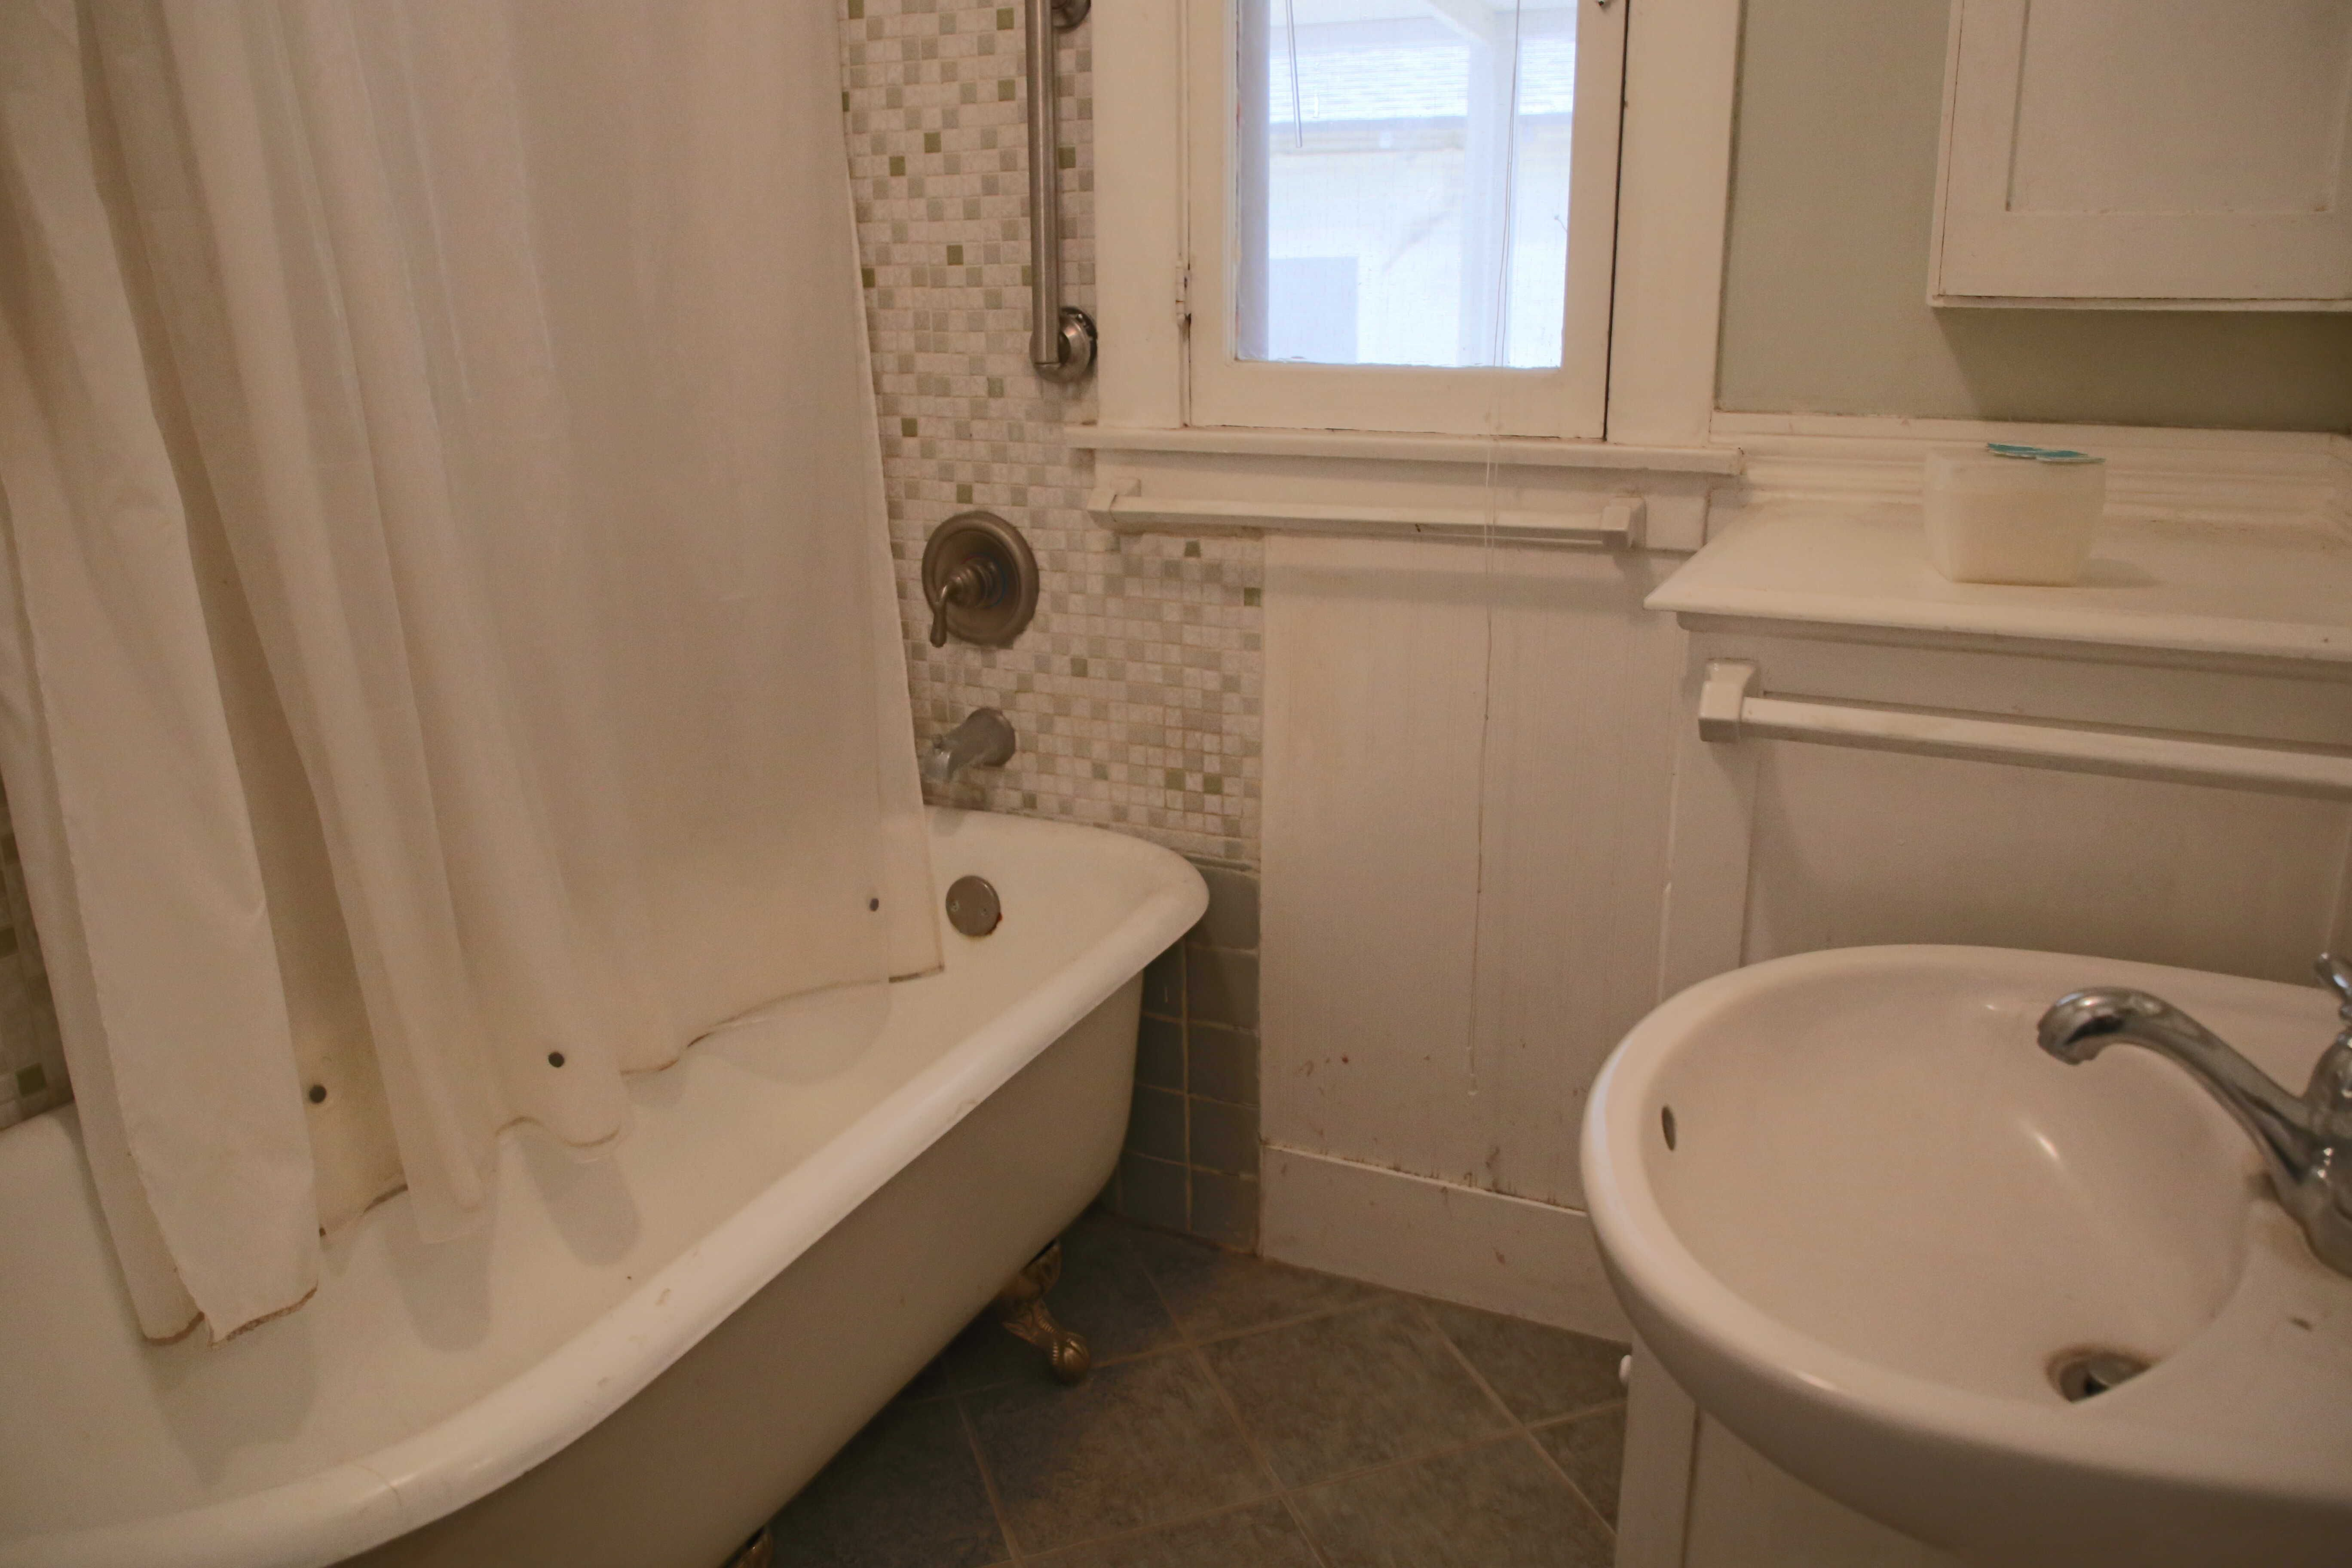 Bathroom with tile floor, pedestal sink, and 10-yr-old claw foot tub.